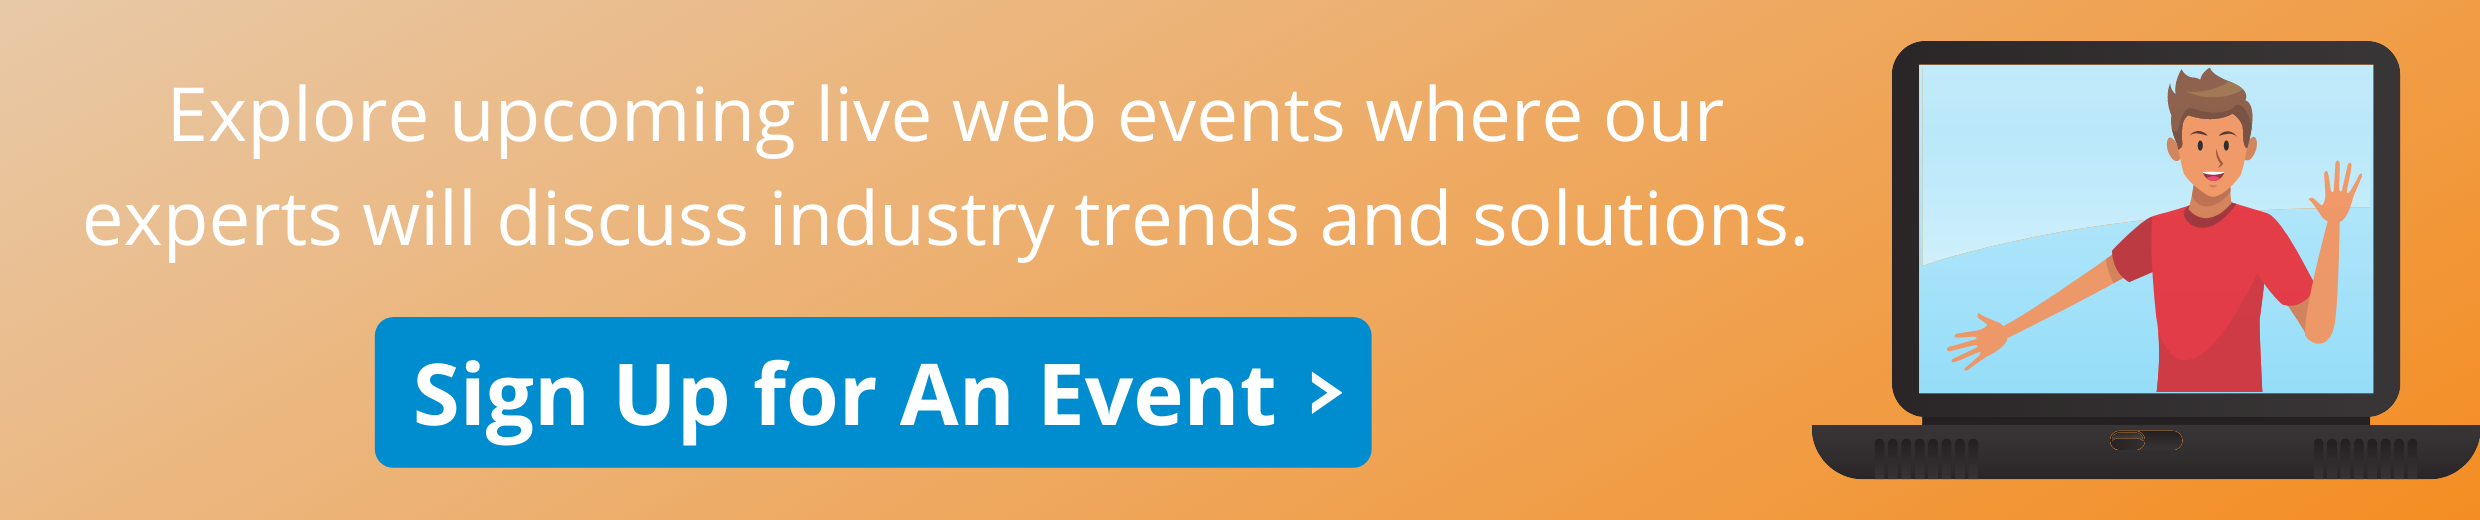 sign up for a purview live web event